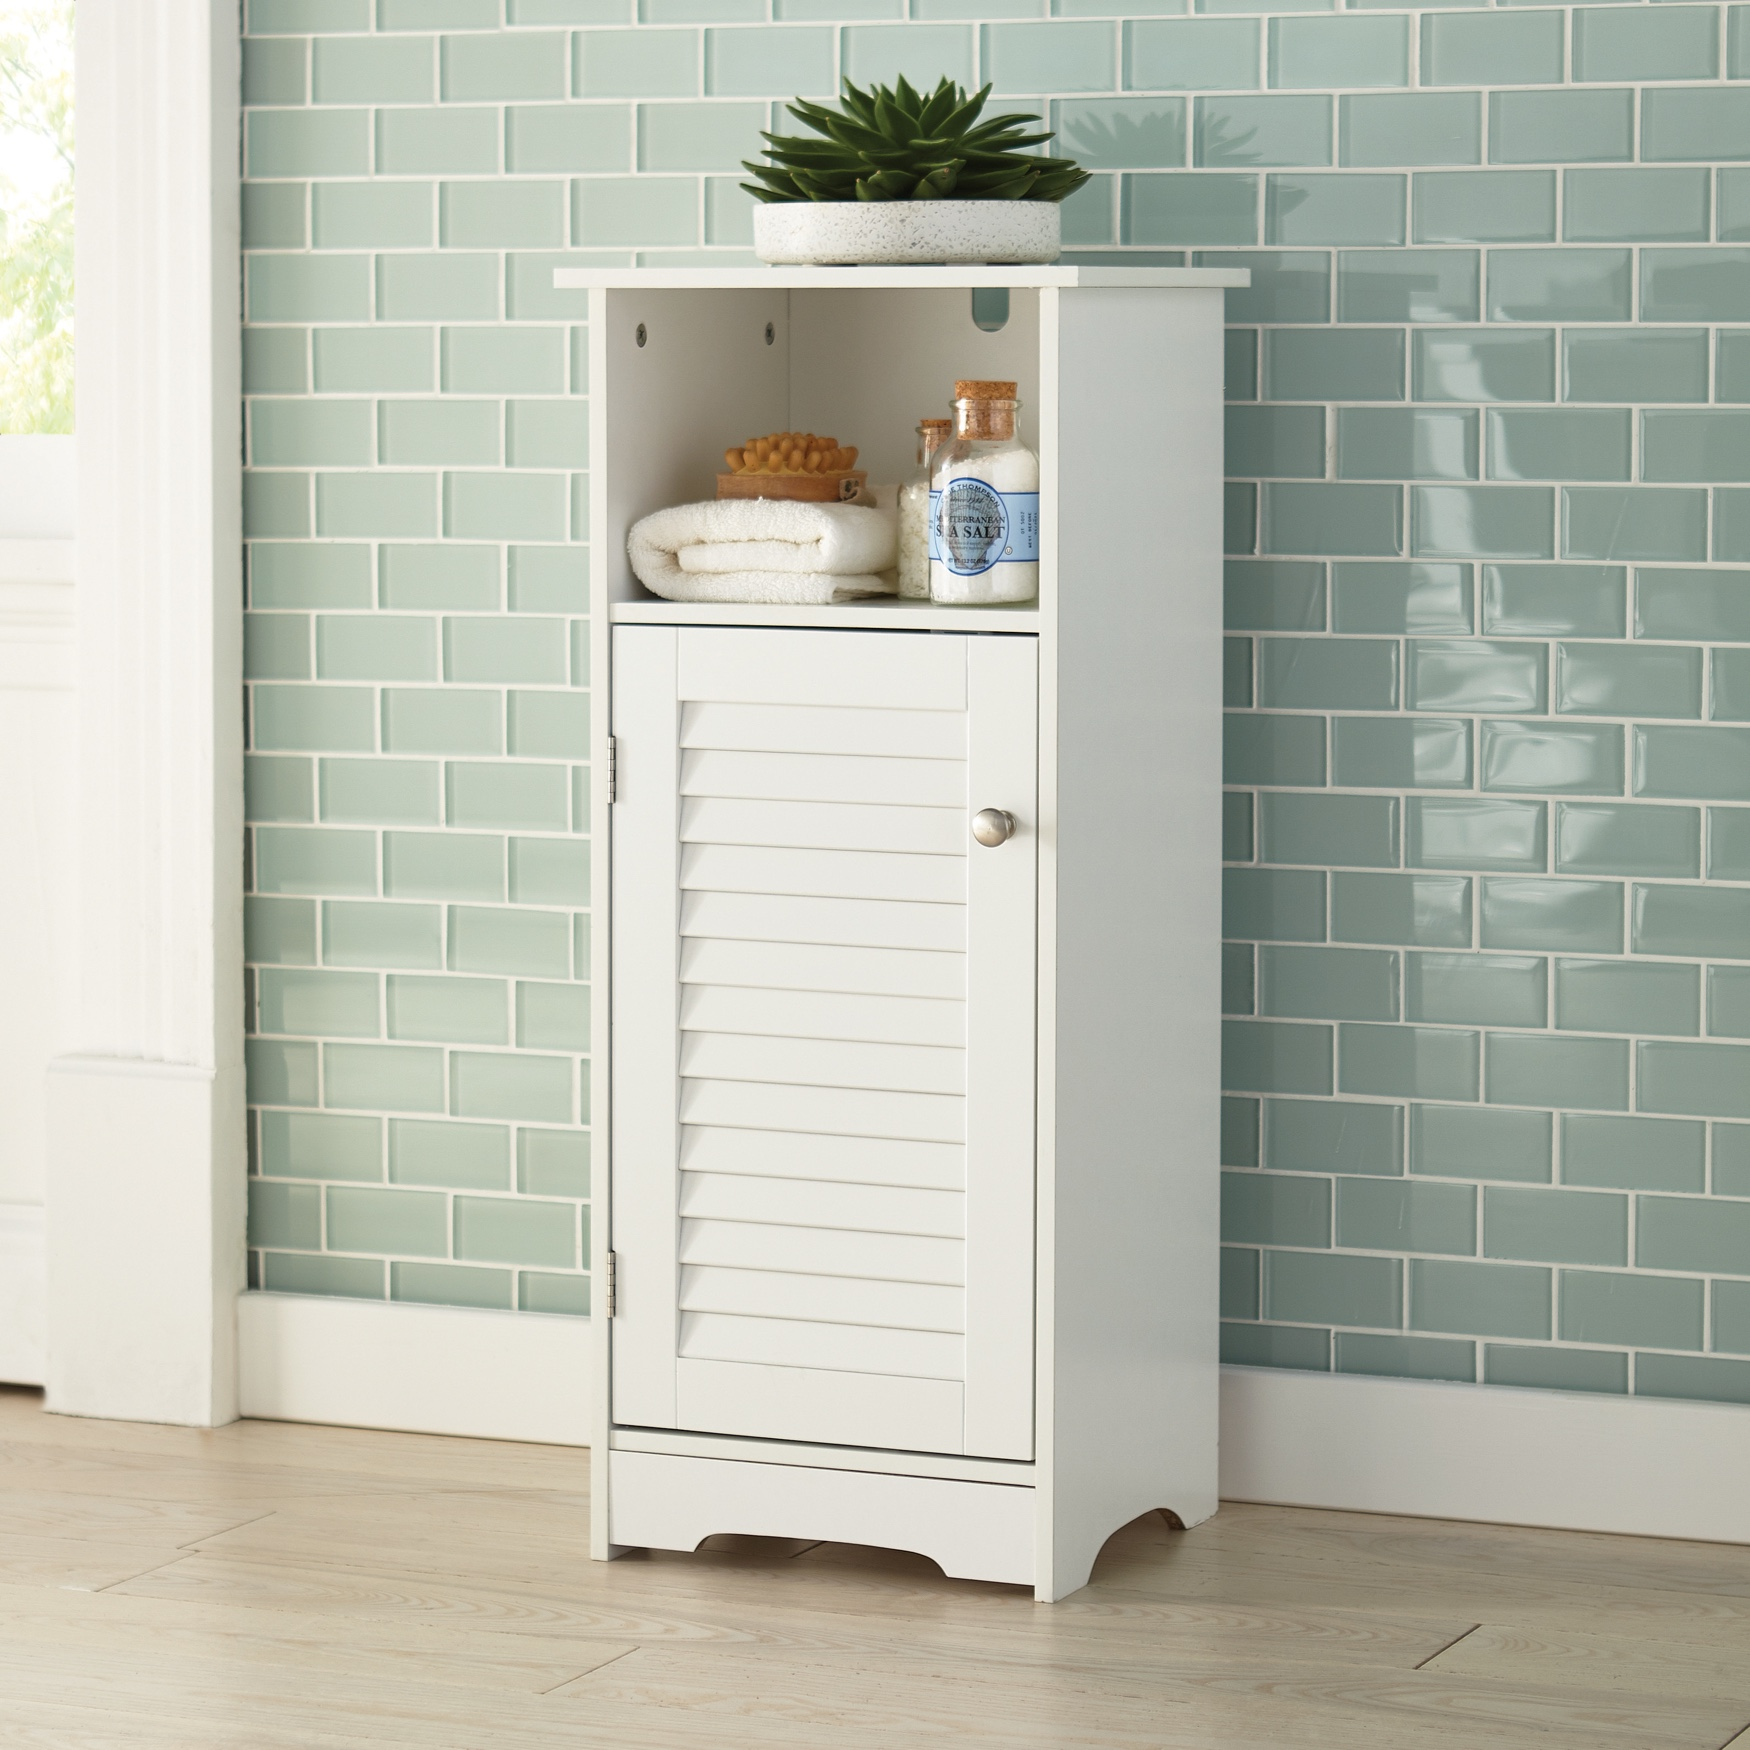 Louvre Short Cabinet with Cubby, WHITE